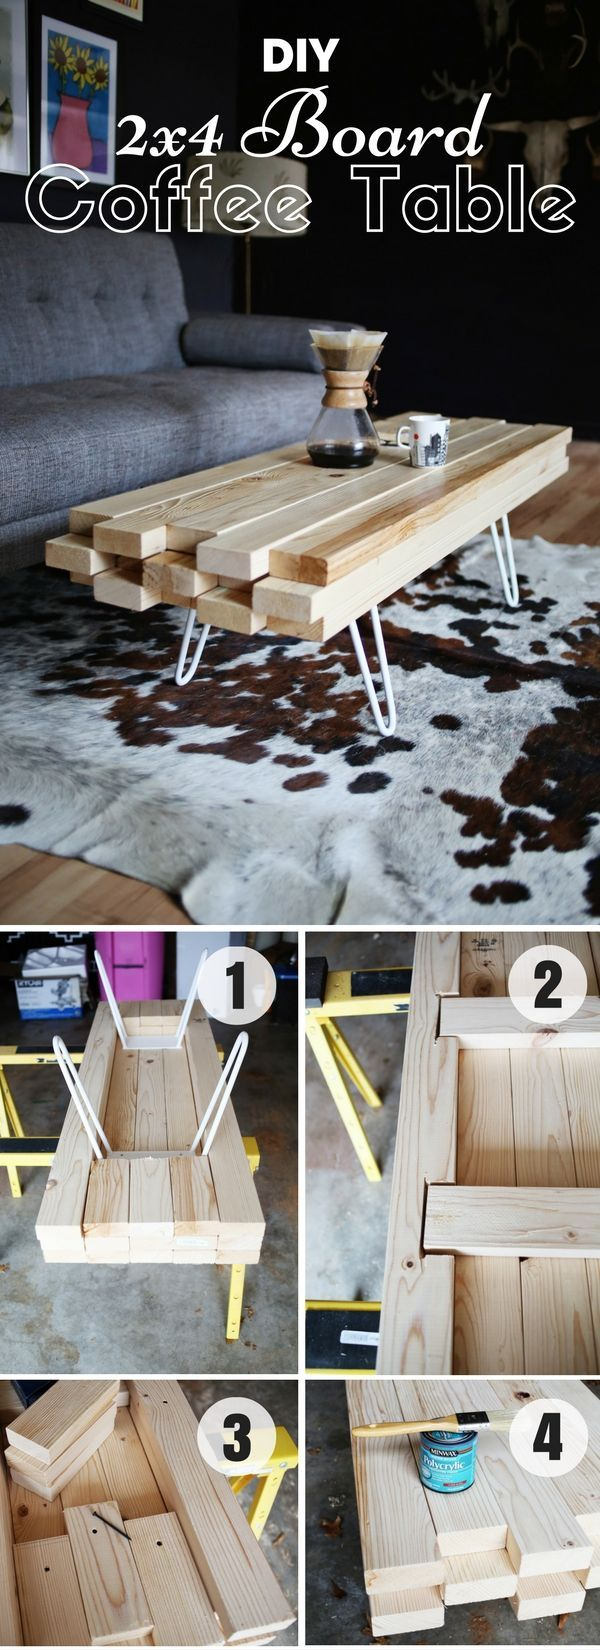 Check out how to make this easy DIY 2x4 Board Coffee Table @istandarddesign (Diy Table)